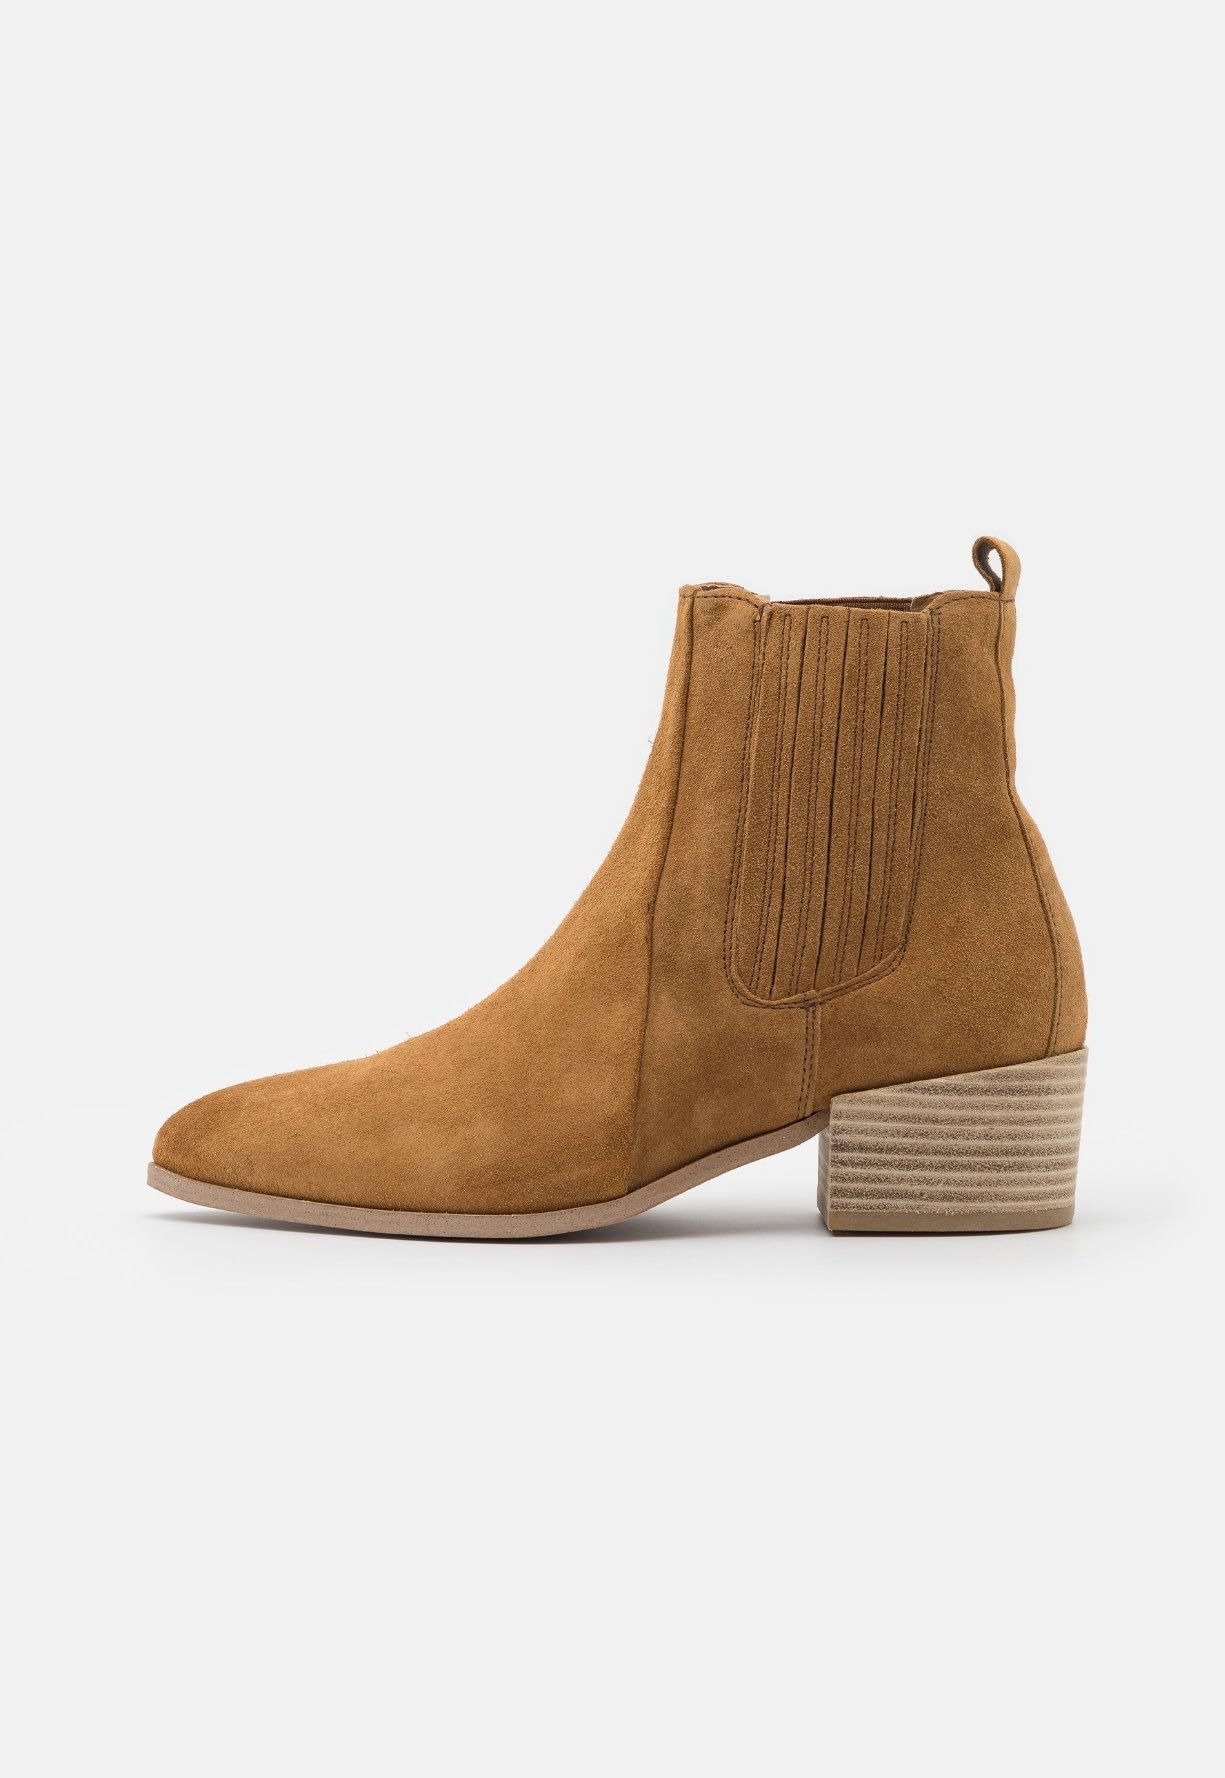 Boot Tan Suede-2